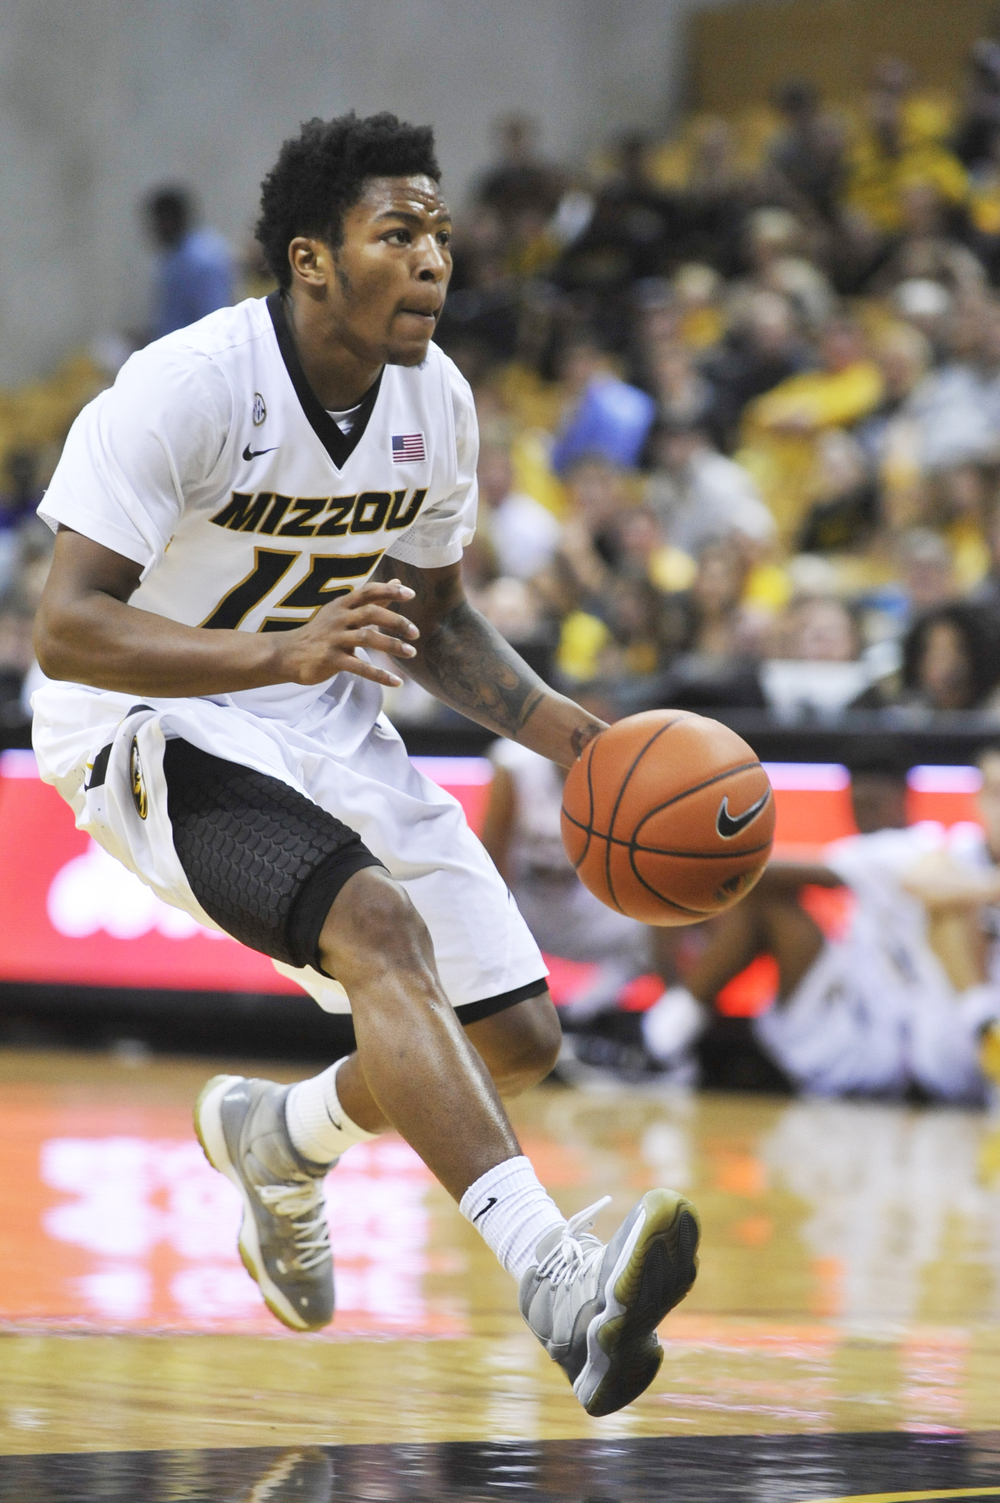 Mizzou's Wes Clark drives the ball down the court during their game against Maryland-Eastern Shore on Sunday, November 15, 2015 at Mizzou Arena. Missouri won 73-55.